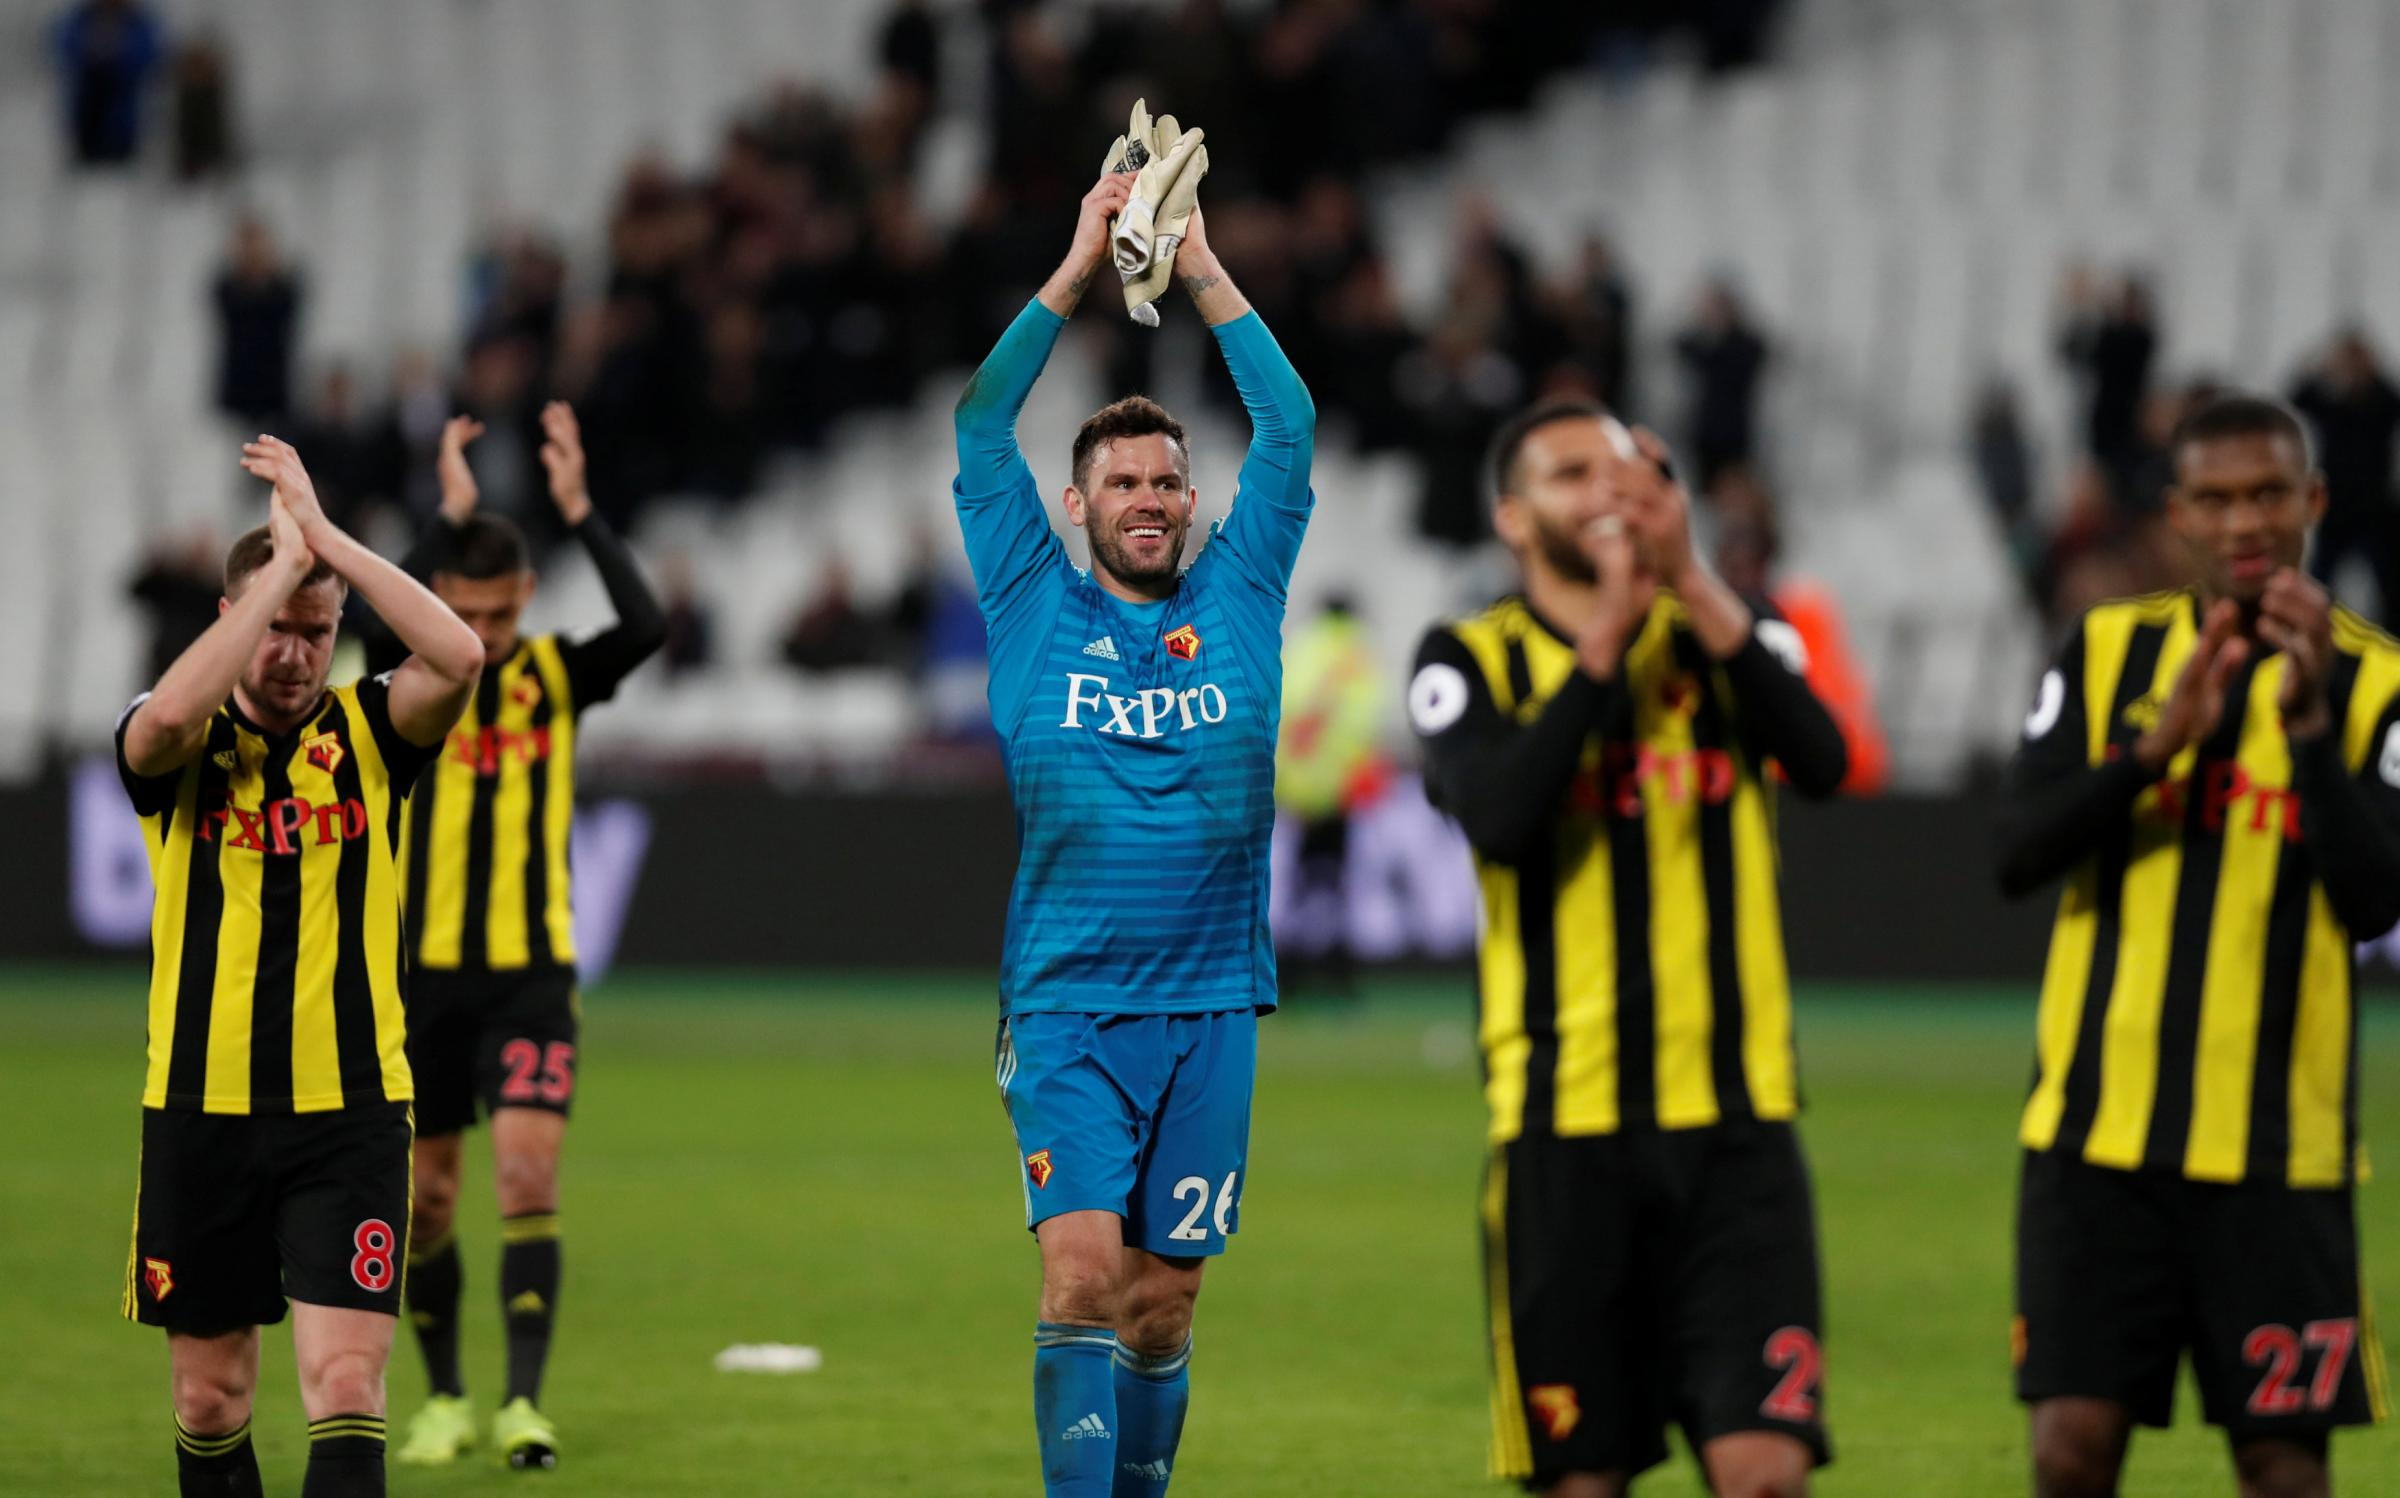 Triumphant: Ben Foster and his teammates applaud the Hornets fans at full-time. Pictures: Action Images